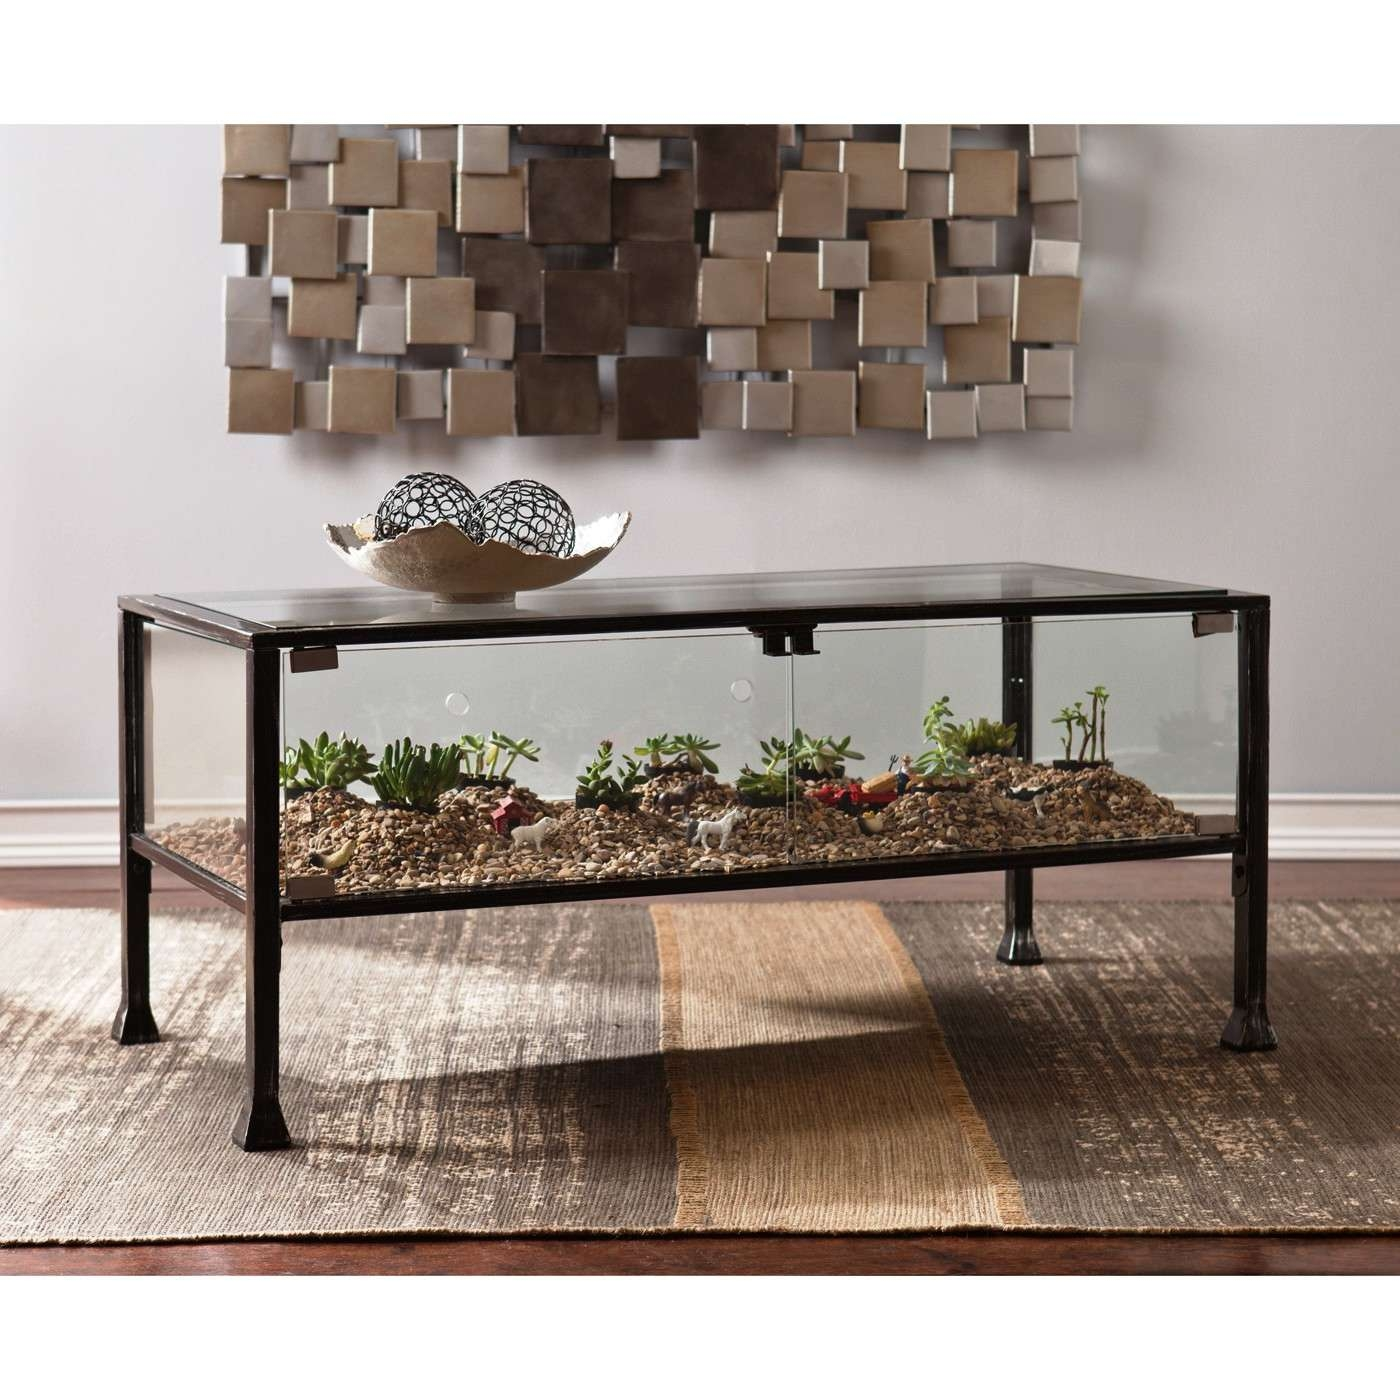 Coffee Tables : Stylish Dark Tempered Oval Glass Coffee Table Inside Well Liked Floating Glass Coffee Tables (View 10 of 20)